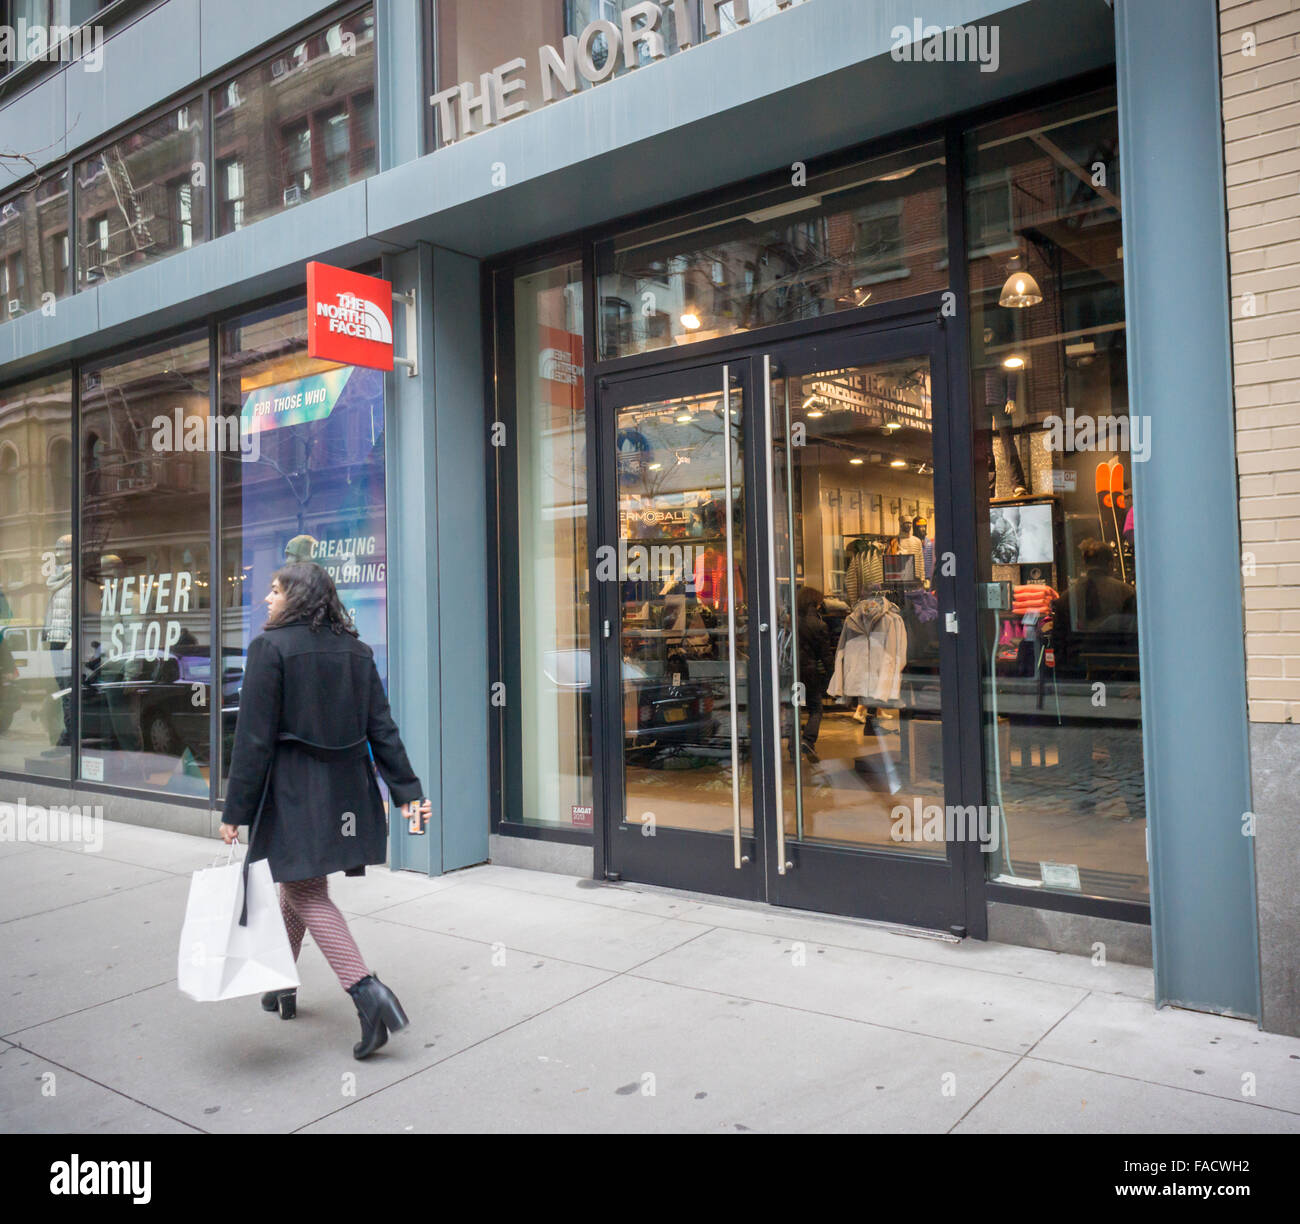 the north face nyc